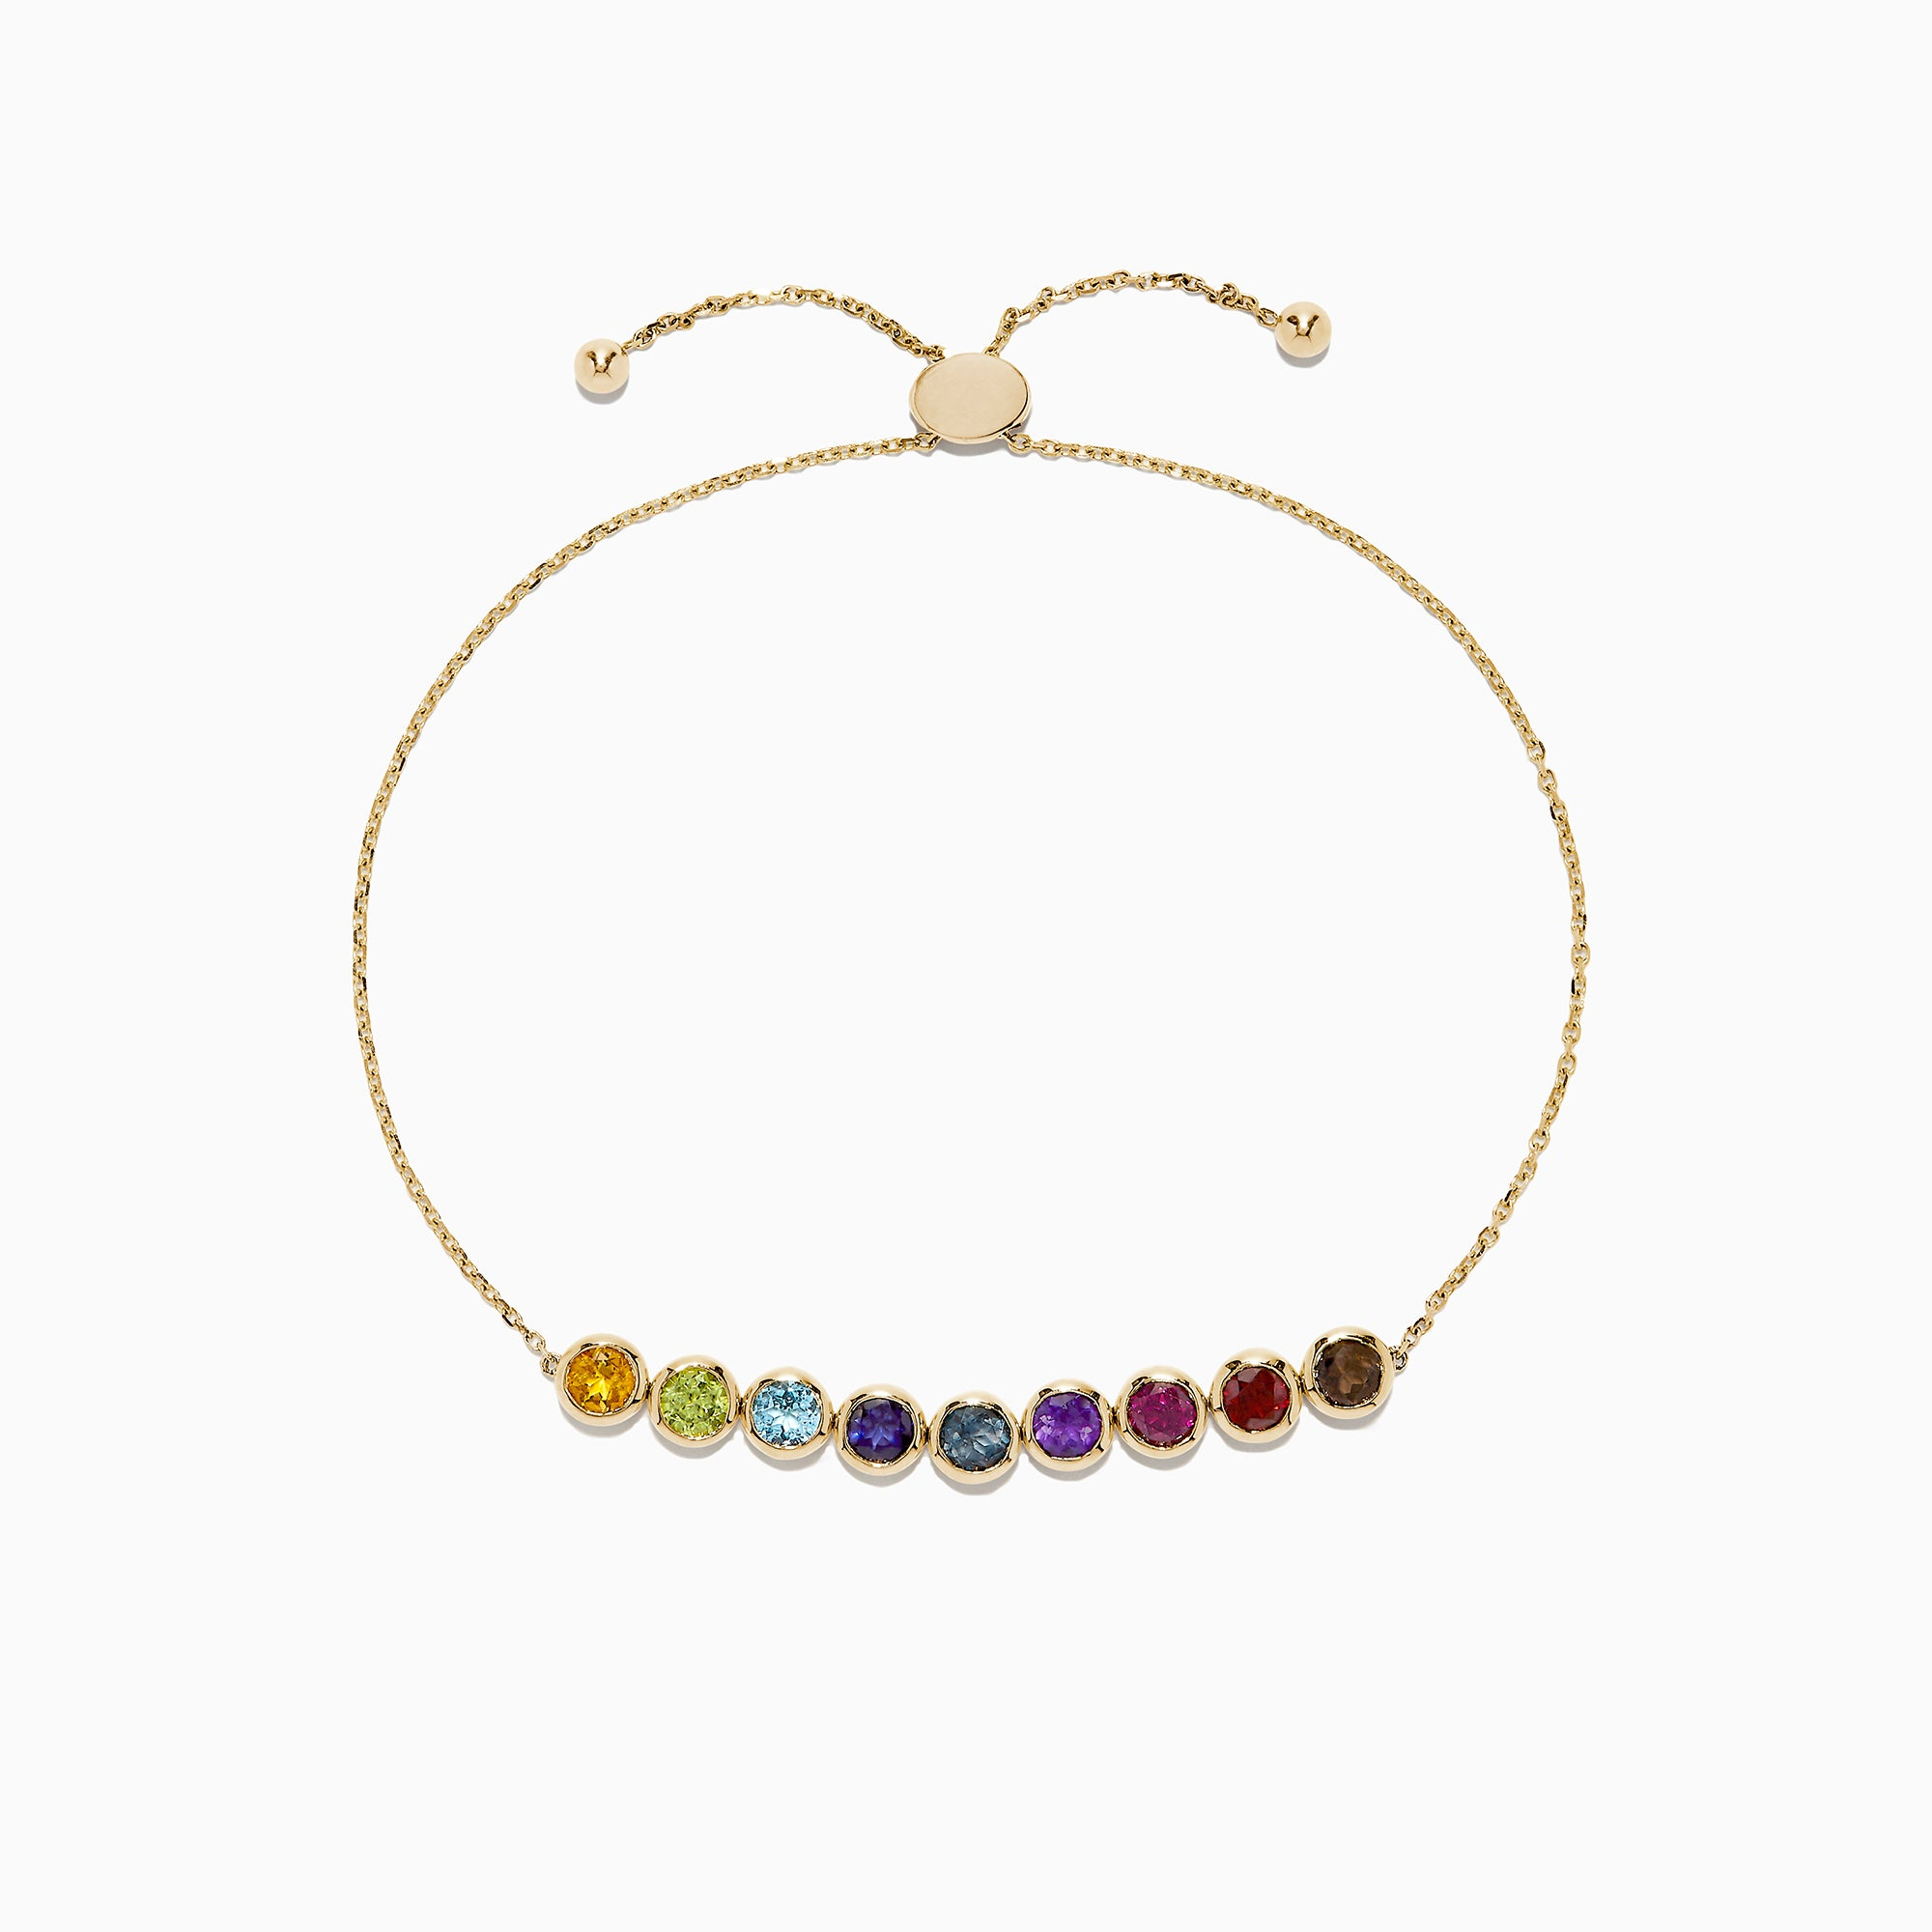 Effy Mosaic 14K Yellow Gold Multi Gemstone Bolo Chain Bracelet, 2.55 TCW